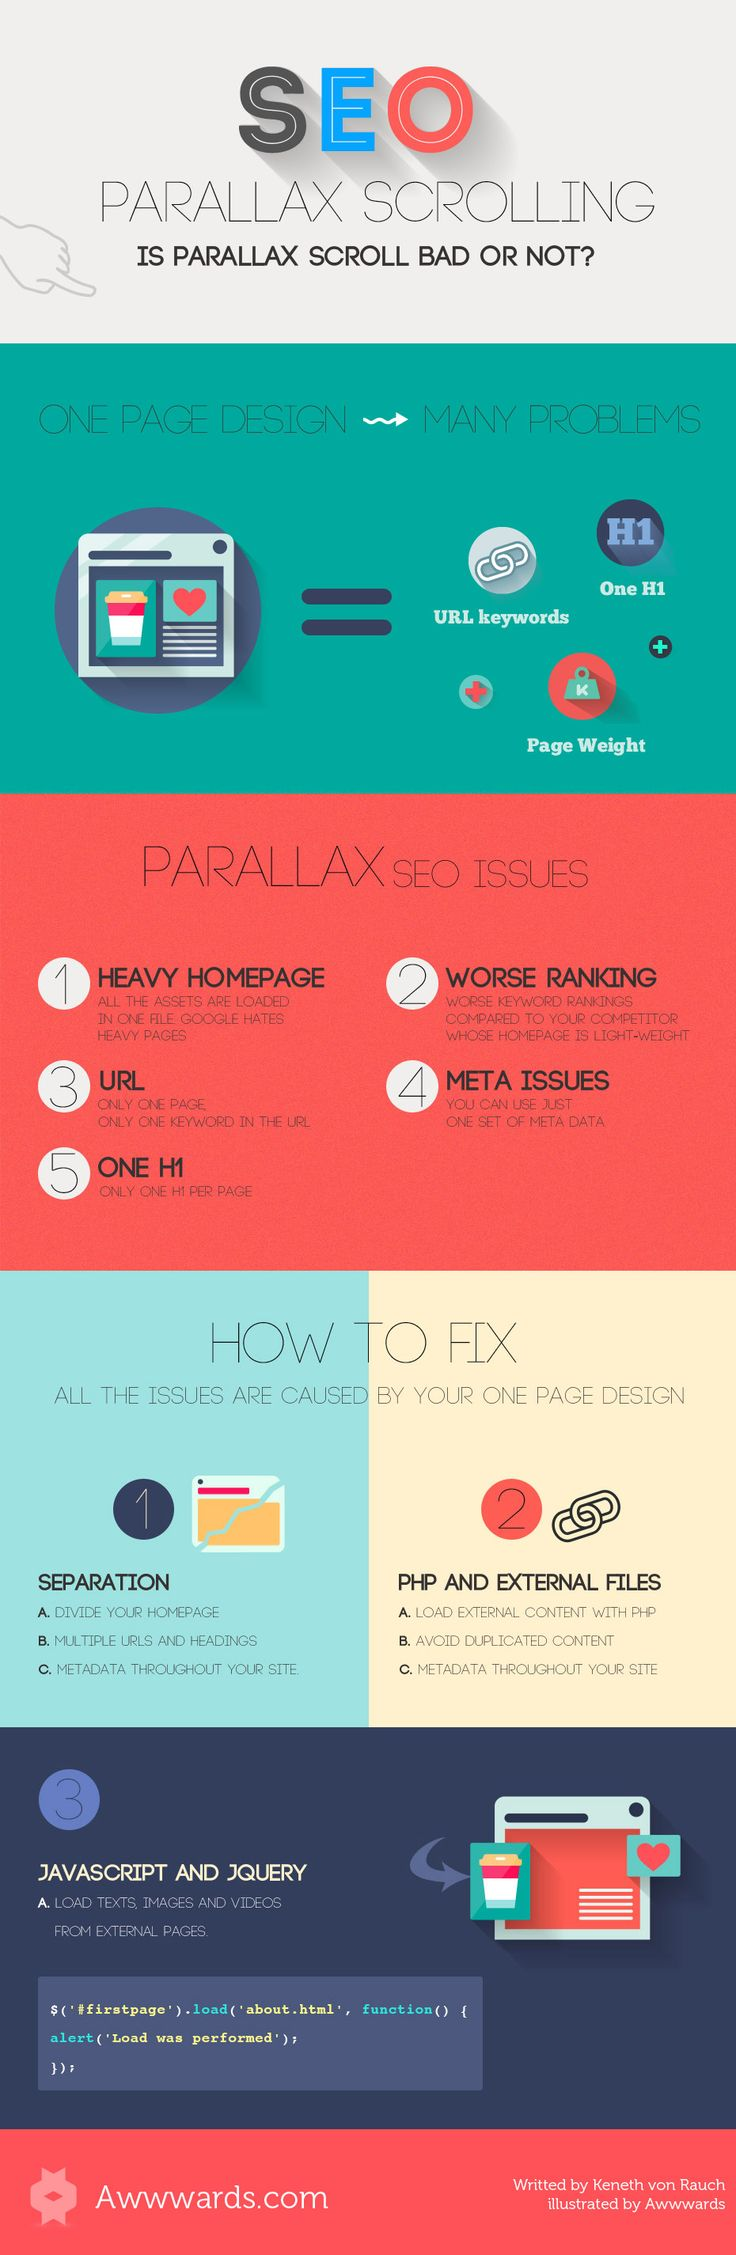 SEO Optimization for Parallax Scrolling websites and Single Page websites.